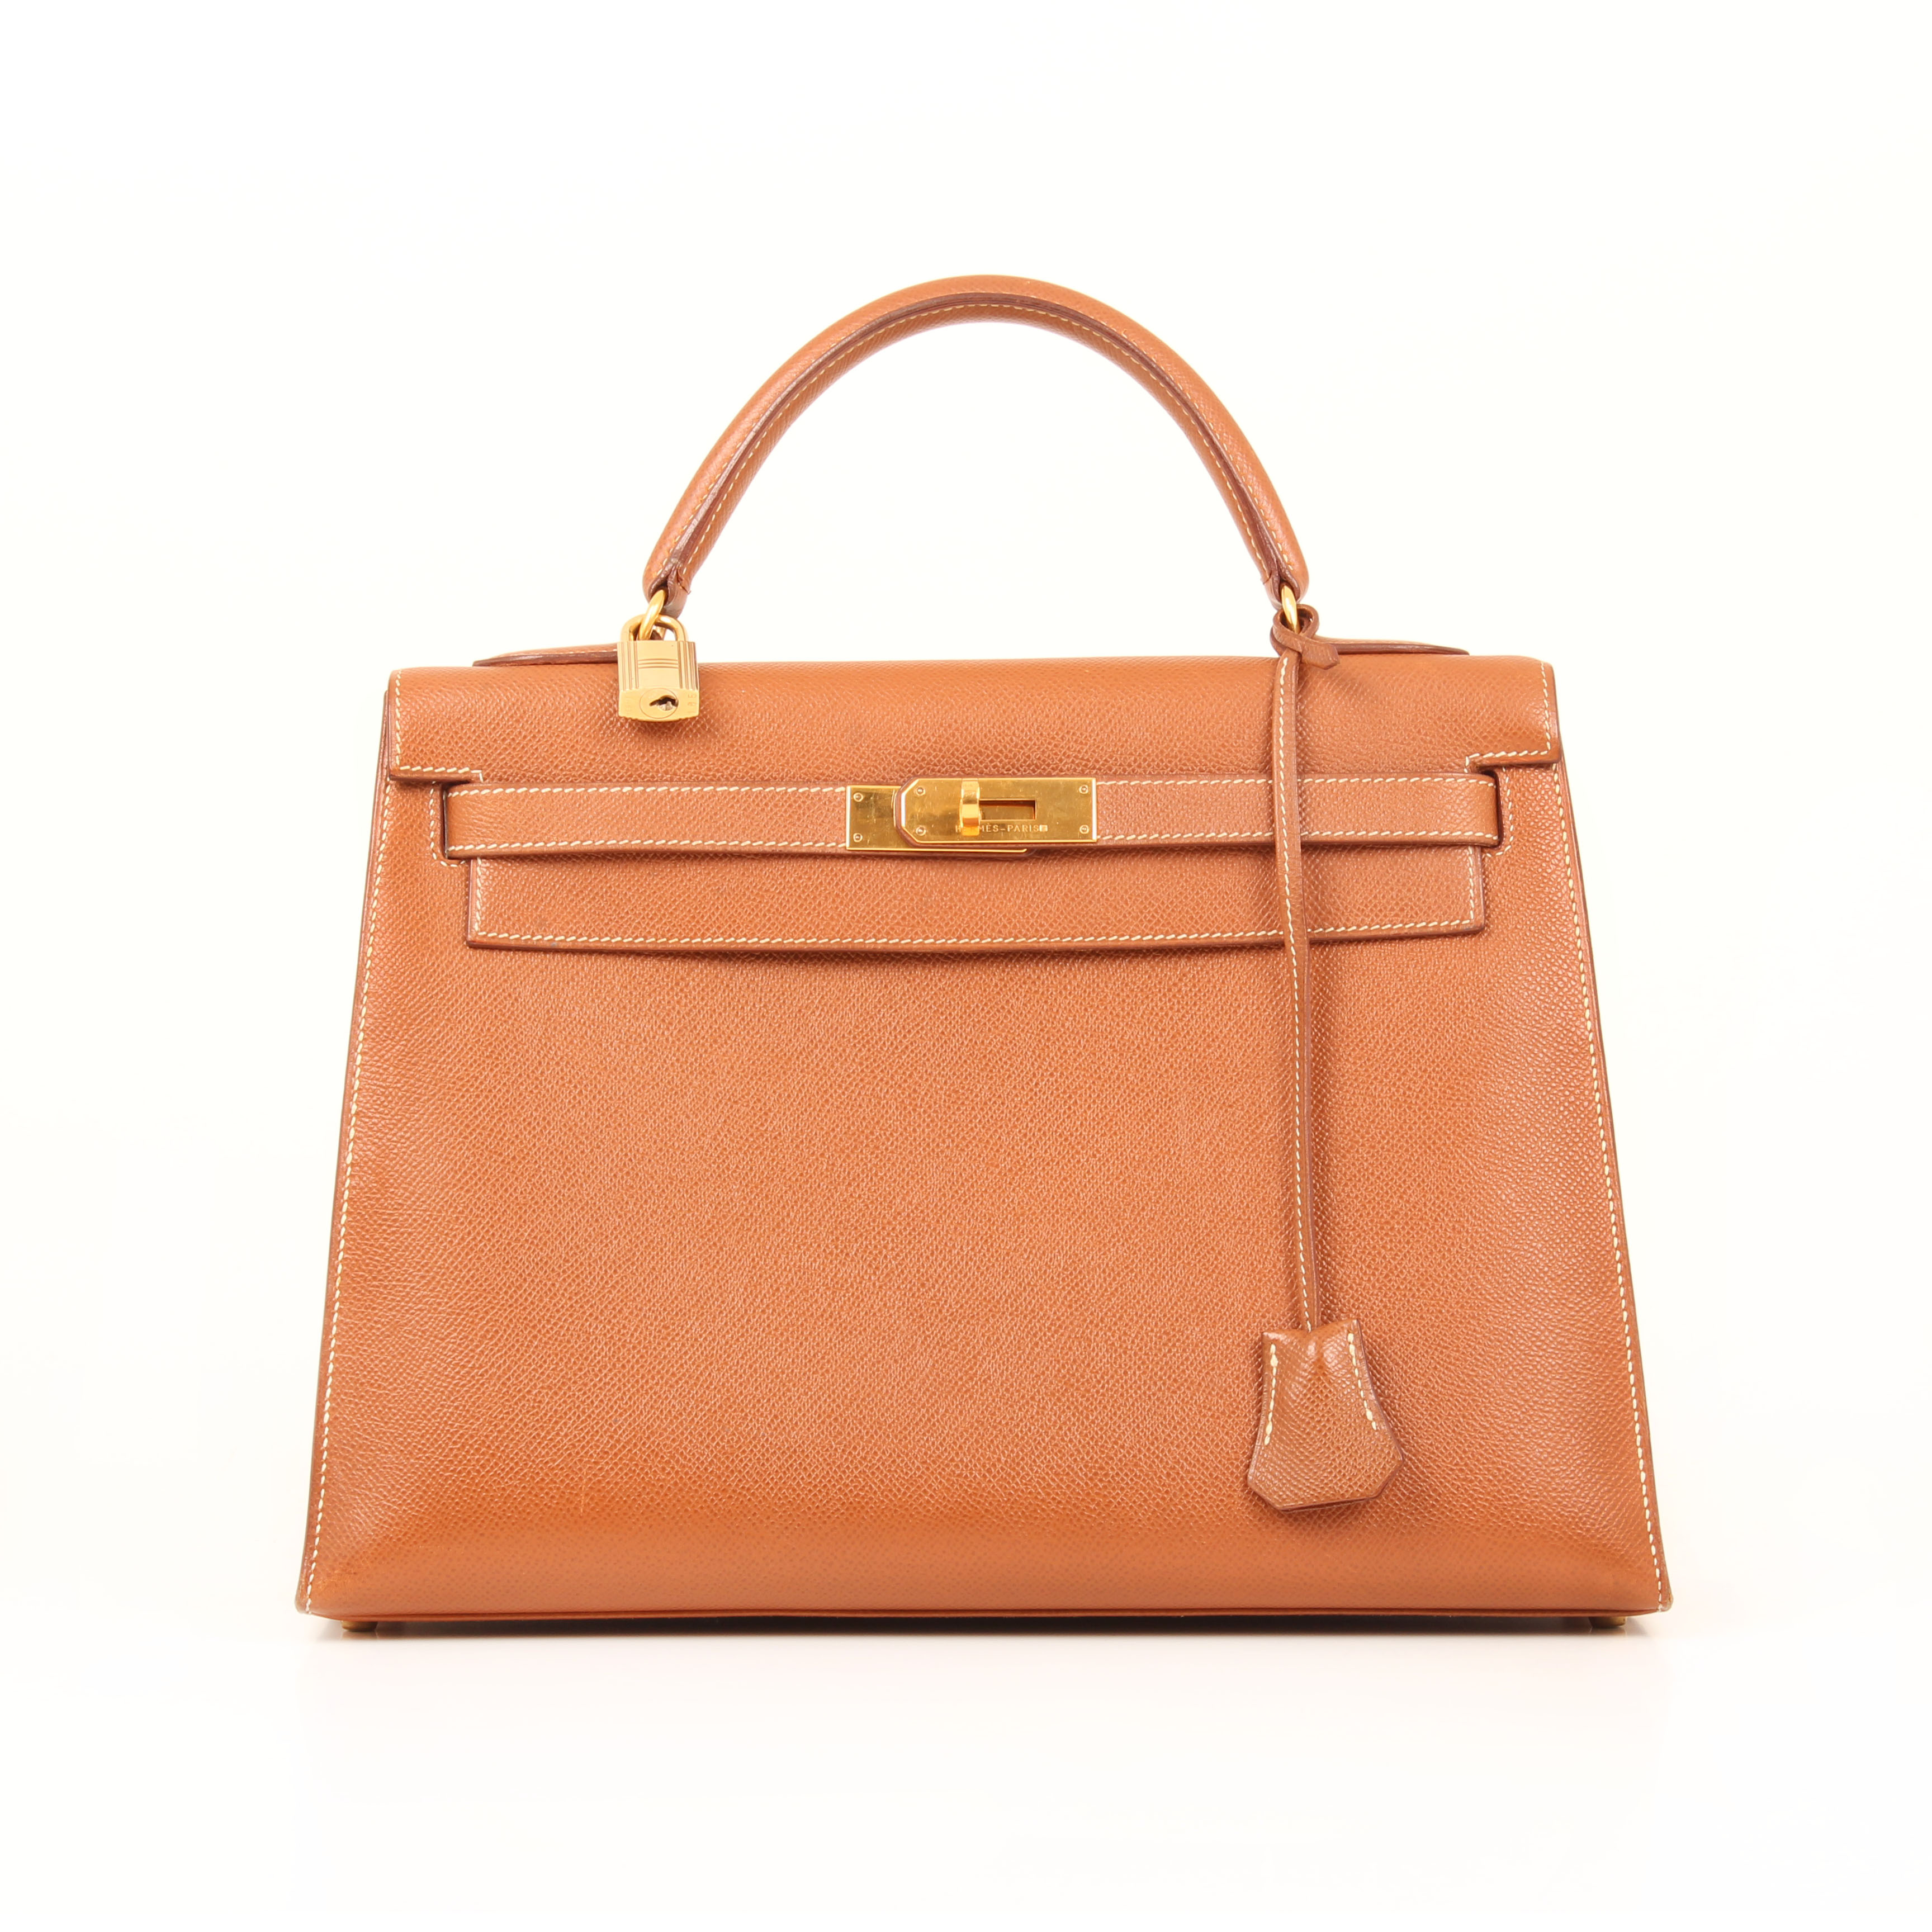 bolso hermes kelly 32 gold sellier piel epsom frontal